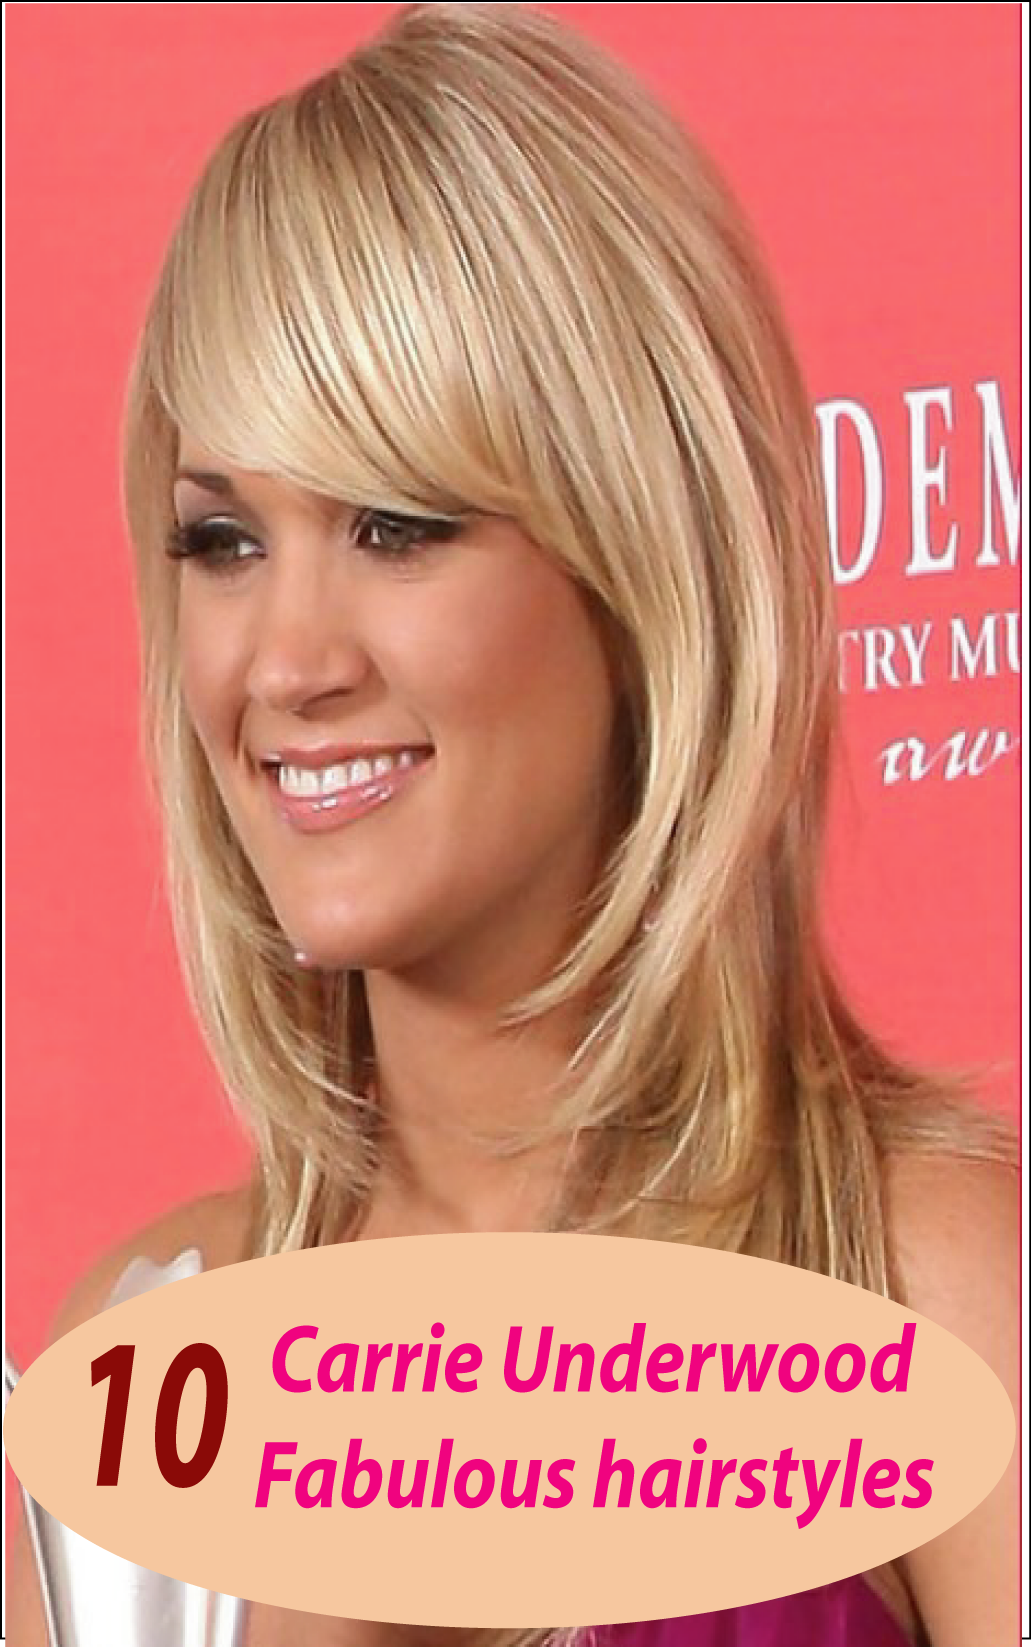 10 Carrie Underwood Fabulous Hairstyles You Ll Want To Copy Now